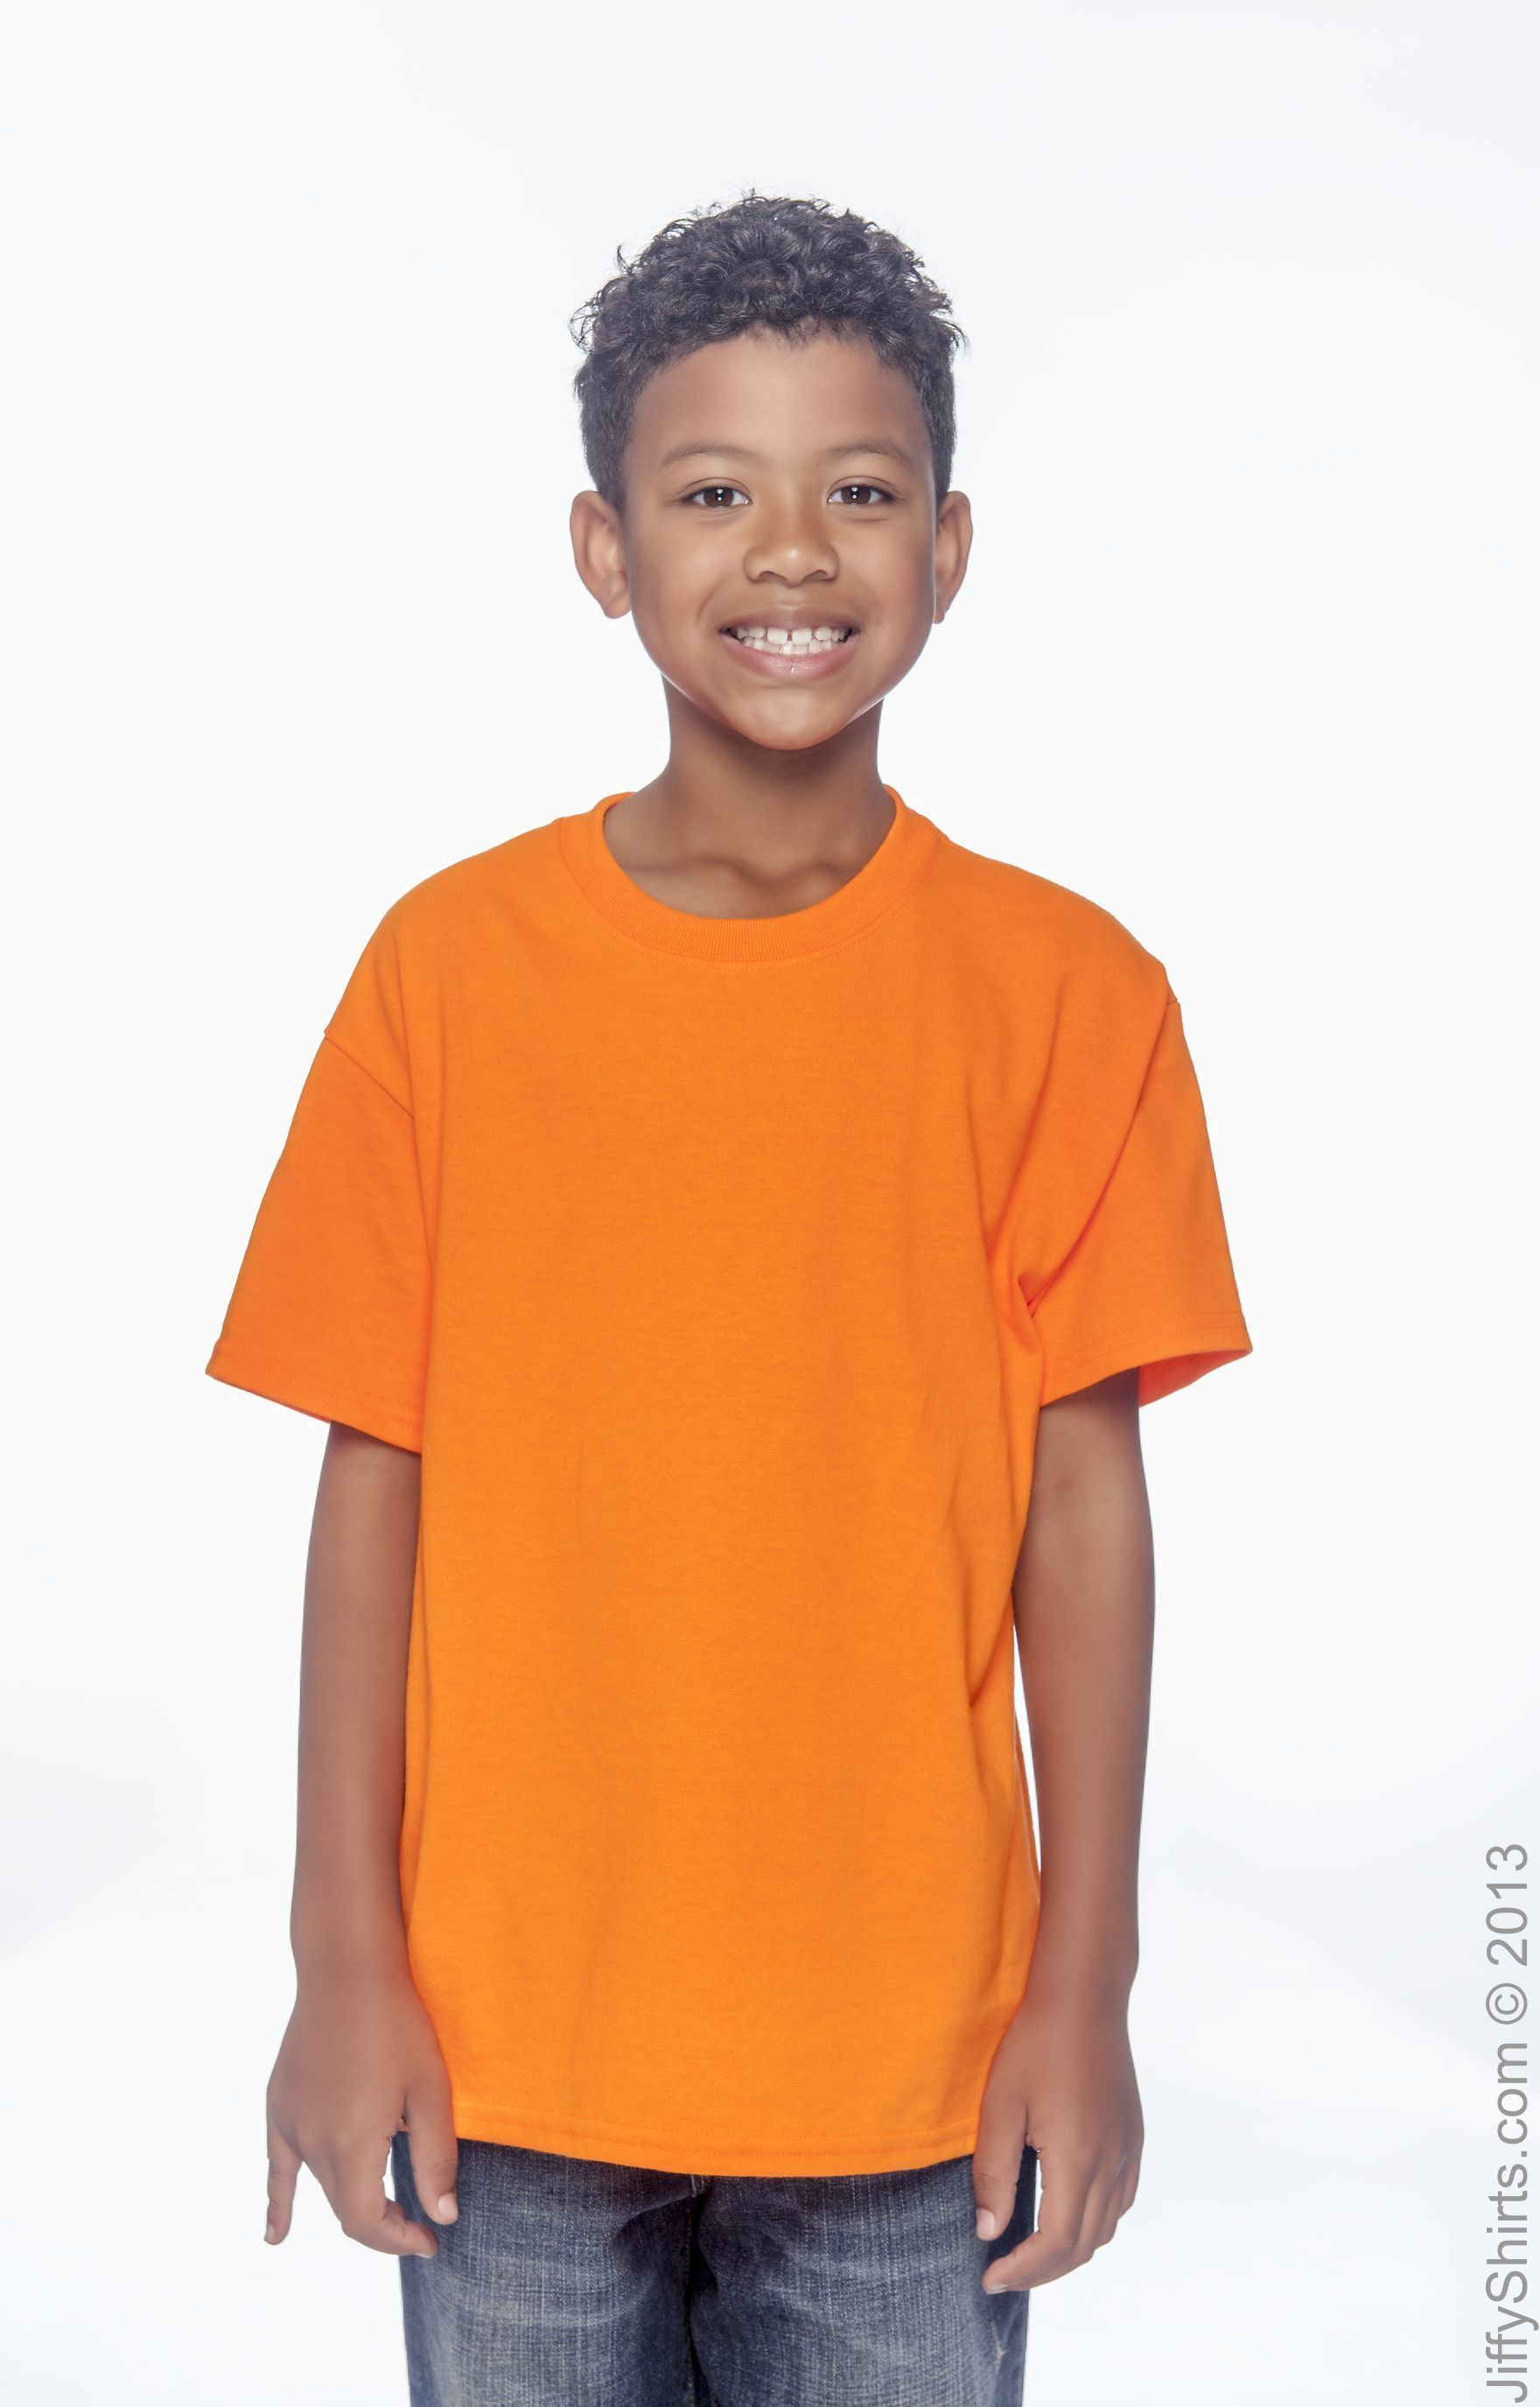 Safety Orange Gildan Big Boys Seamless Double Needle Preshrunk T-Shirt Large